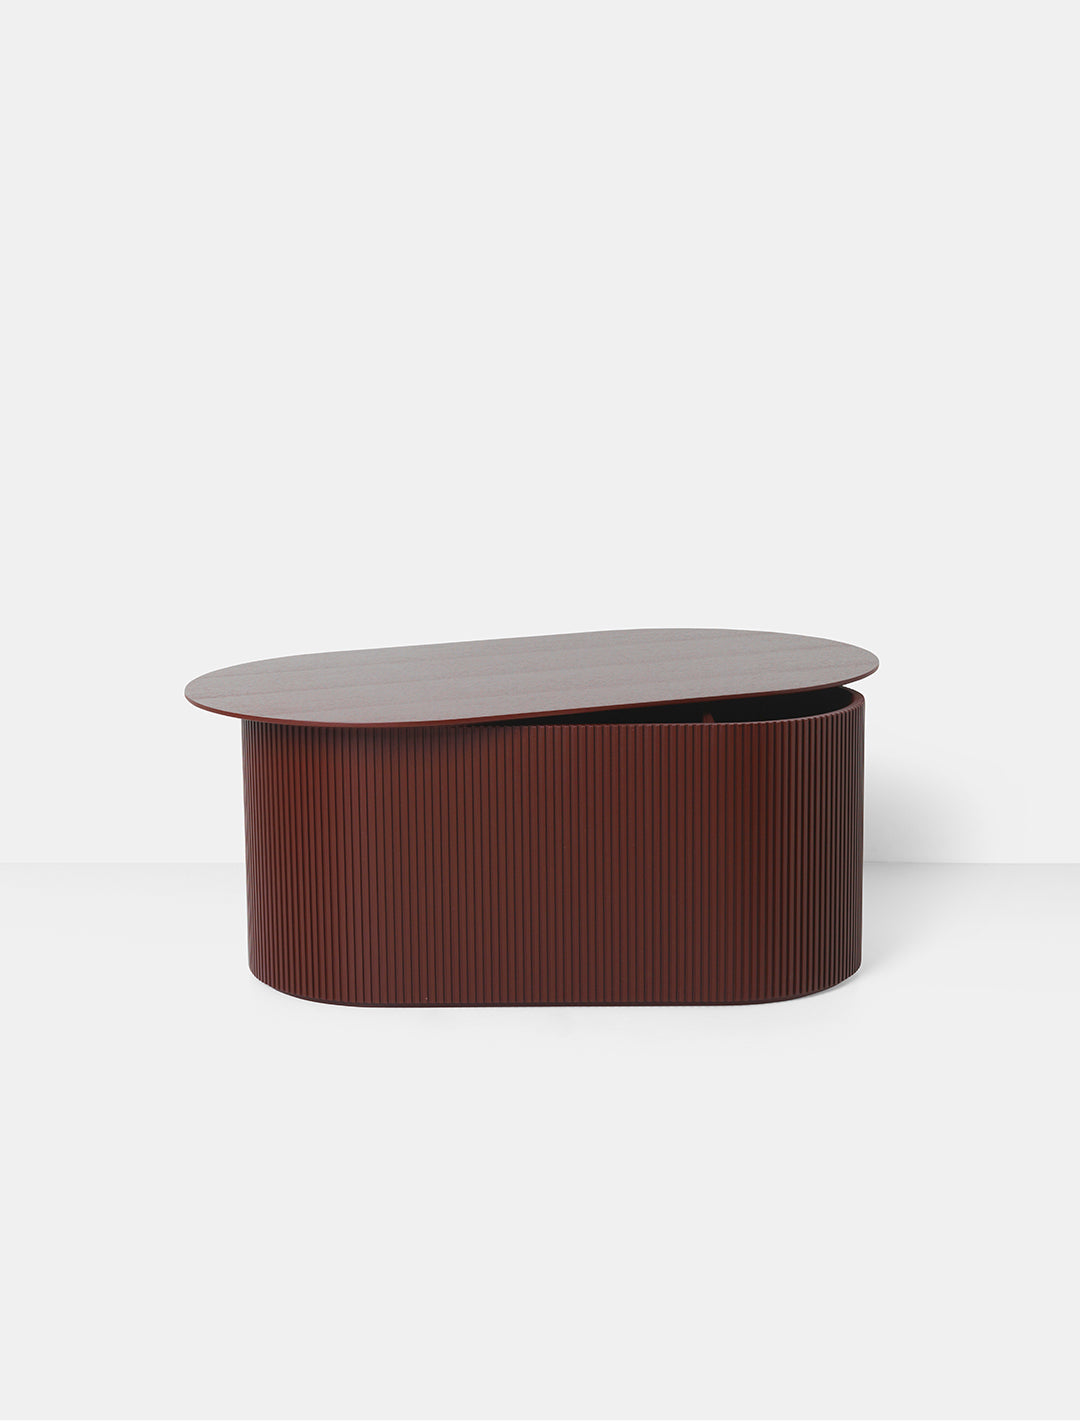 Podia Table Oval in Red Brown design by Ferm Living